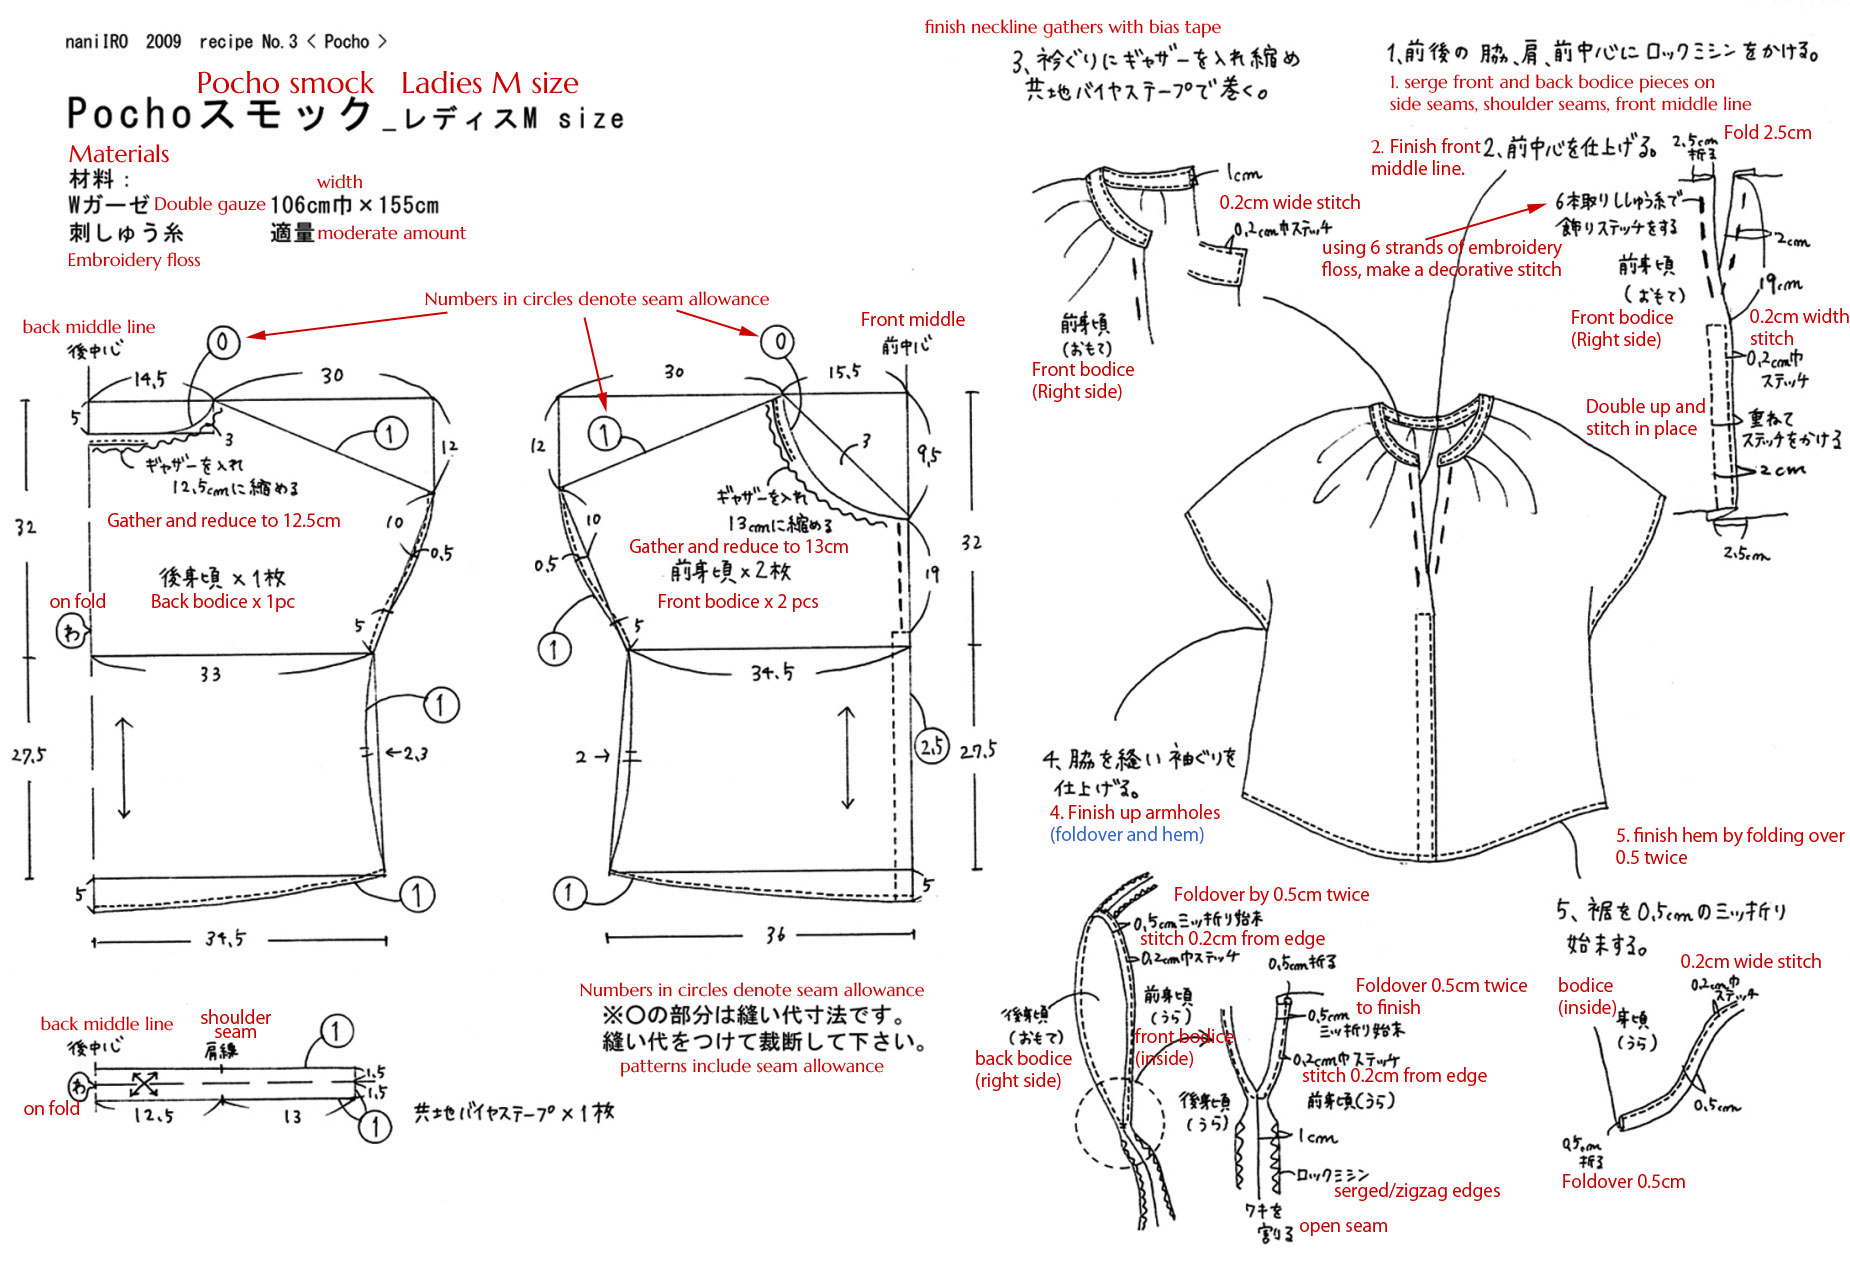 Translation requests 2 nani iro patterns japanese sewing click jeuxipadfo Gallery